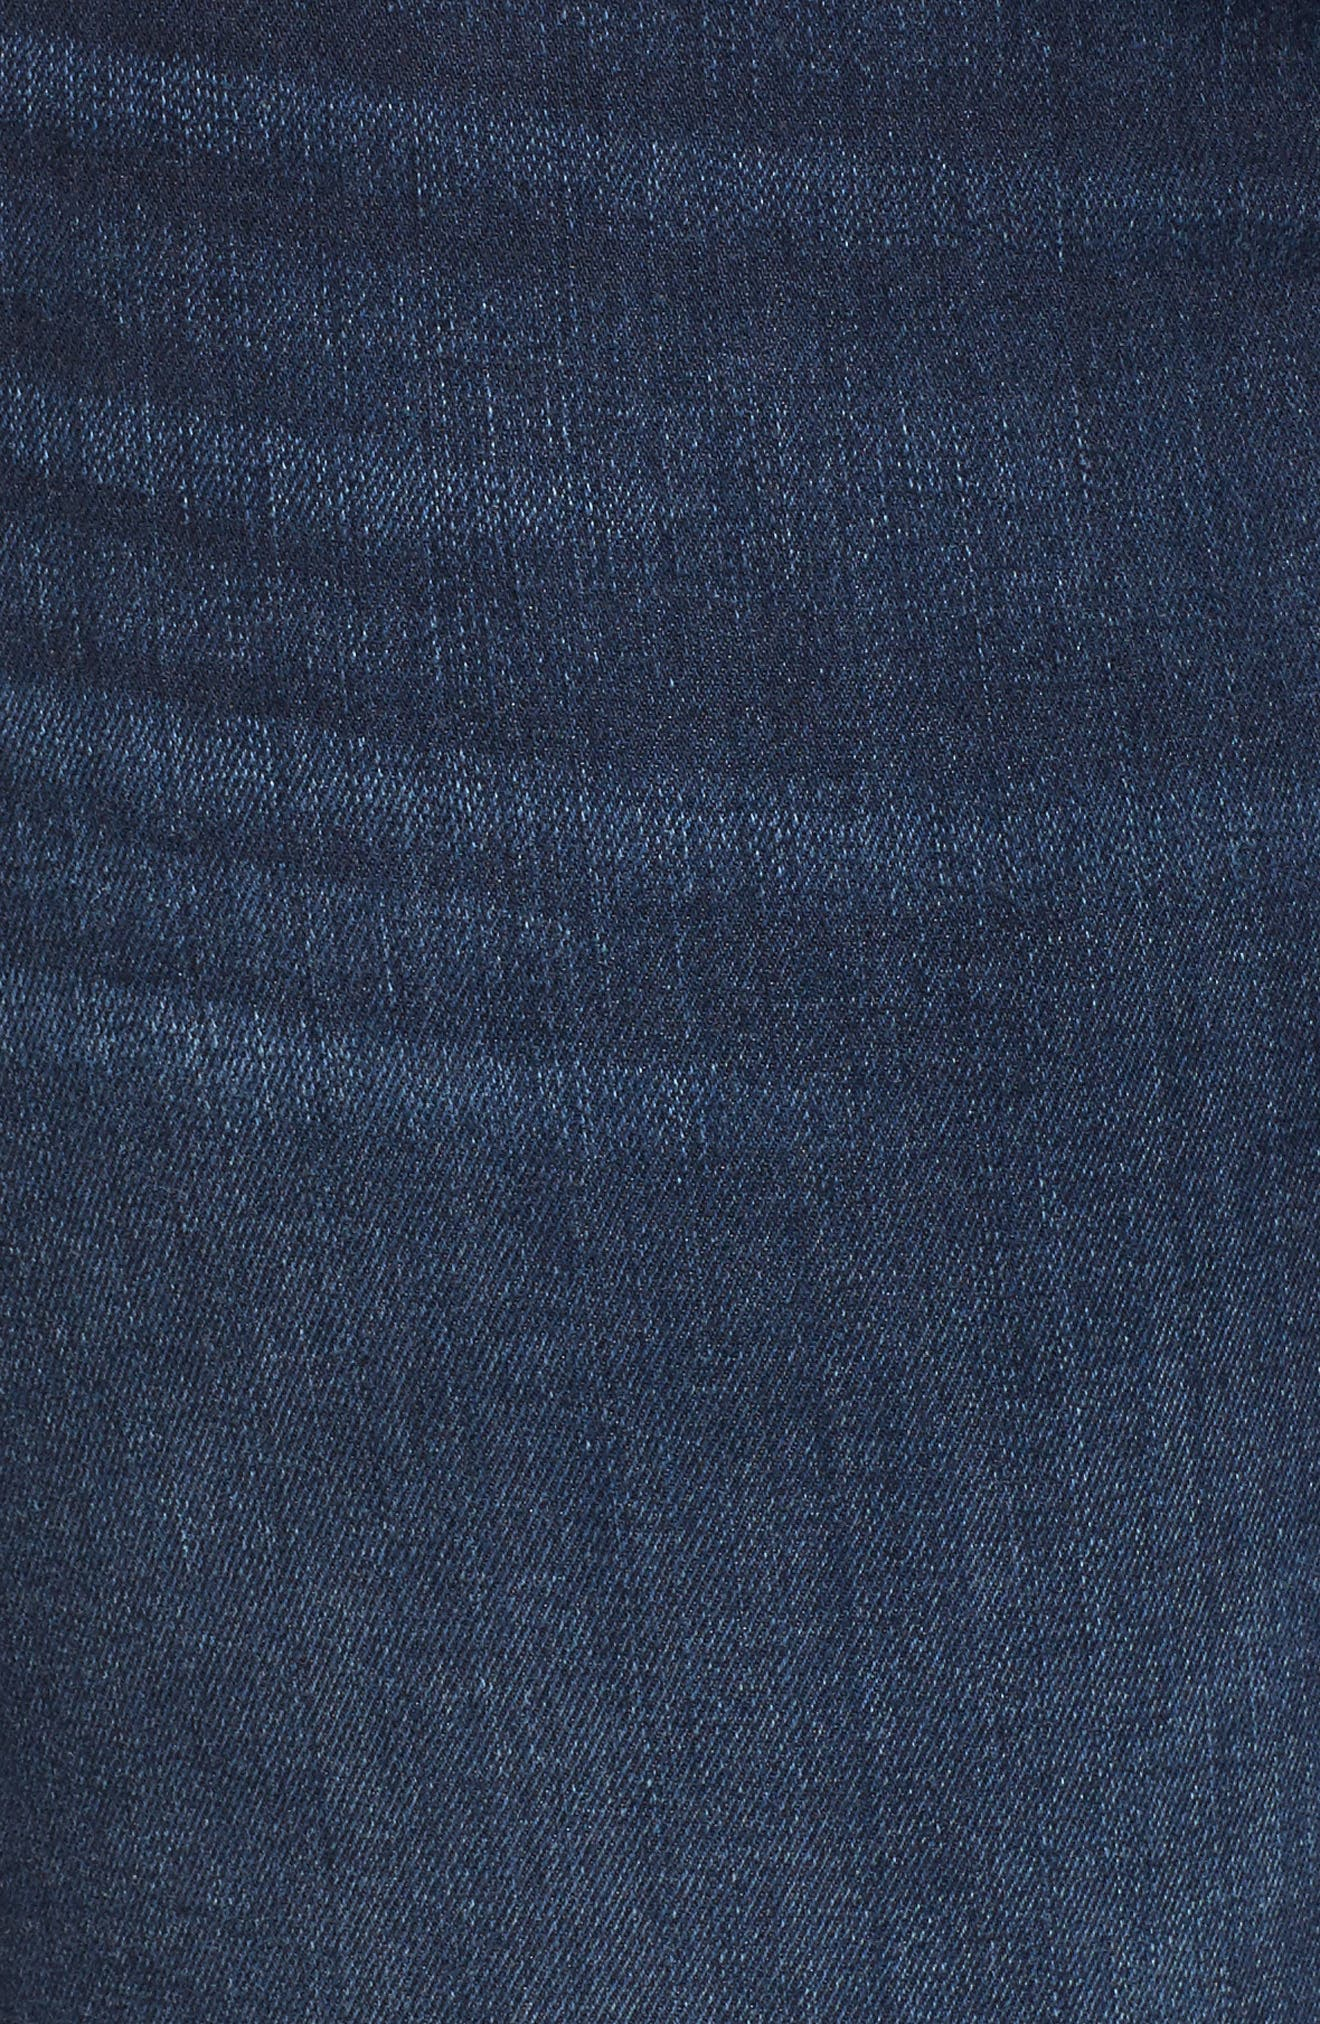 KUT FROM THE KLOTH, Natalie High Waist Bootcut Jeans, Alternate thumbnail 5, color, CLOSENESS W/ EURO BASE WASH